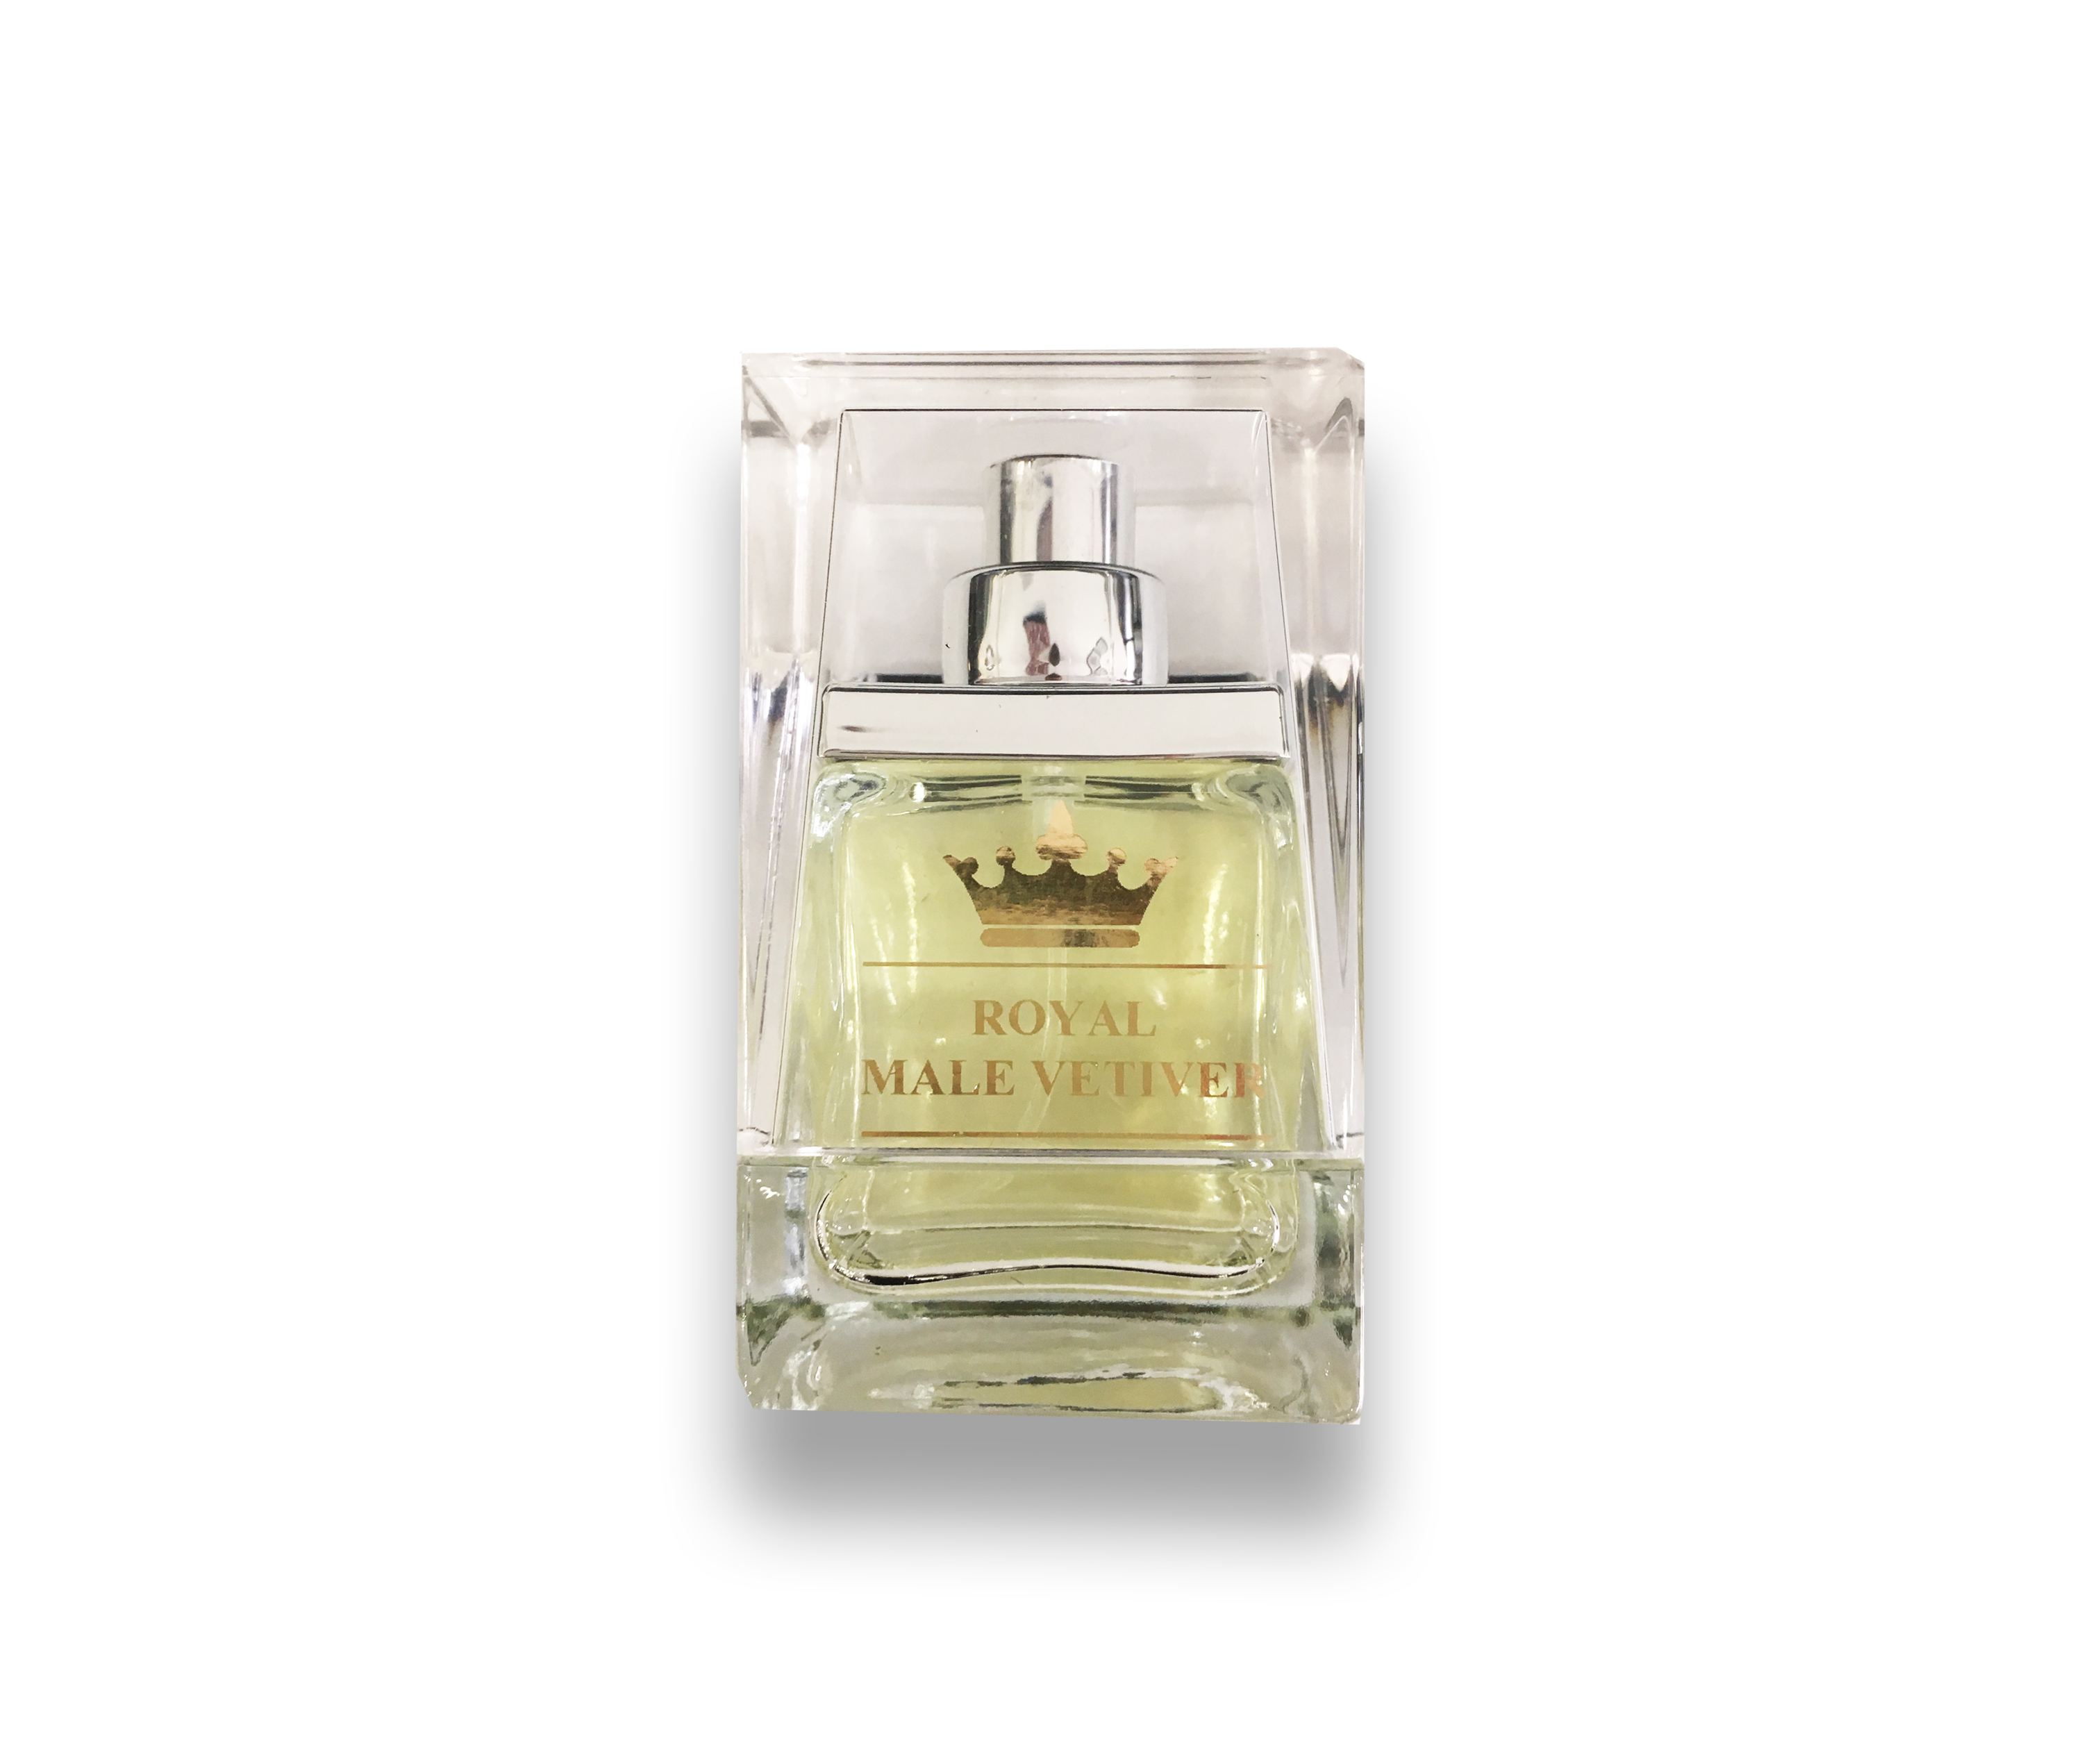 Fragrance: Royal